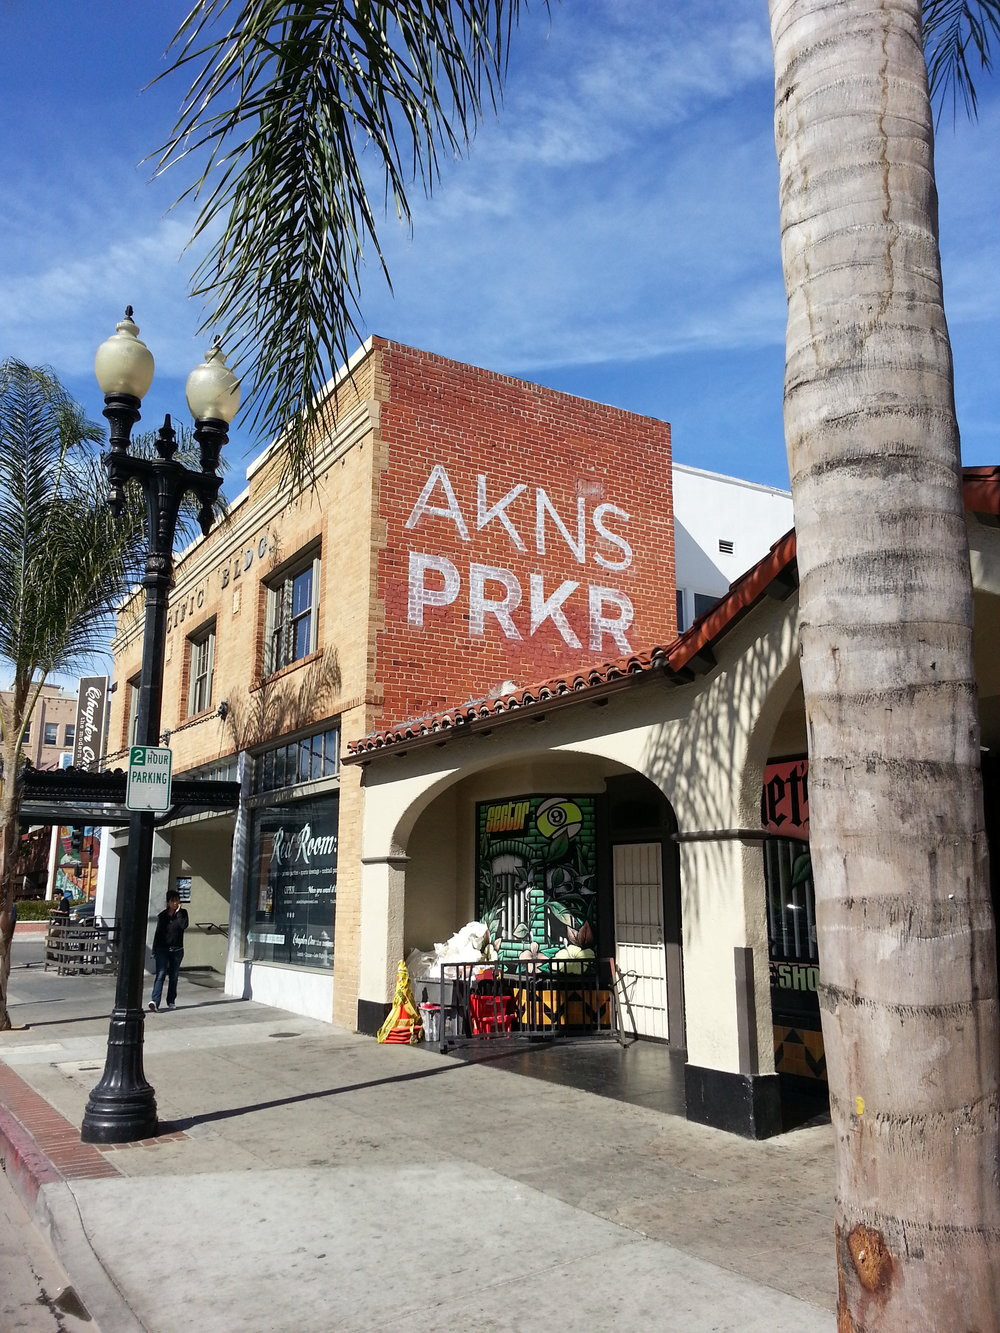 AKINS PARKER GHOST STYLE SIGN